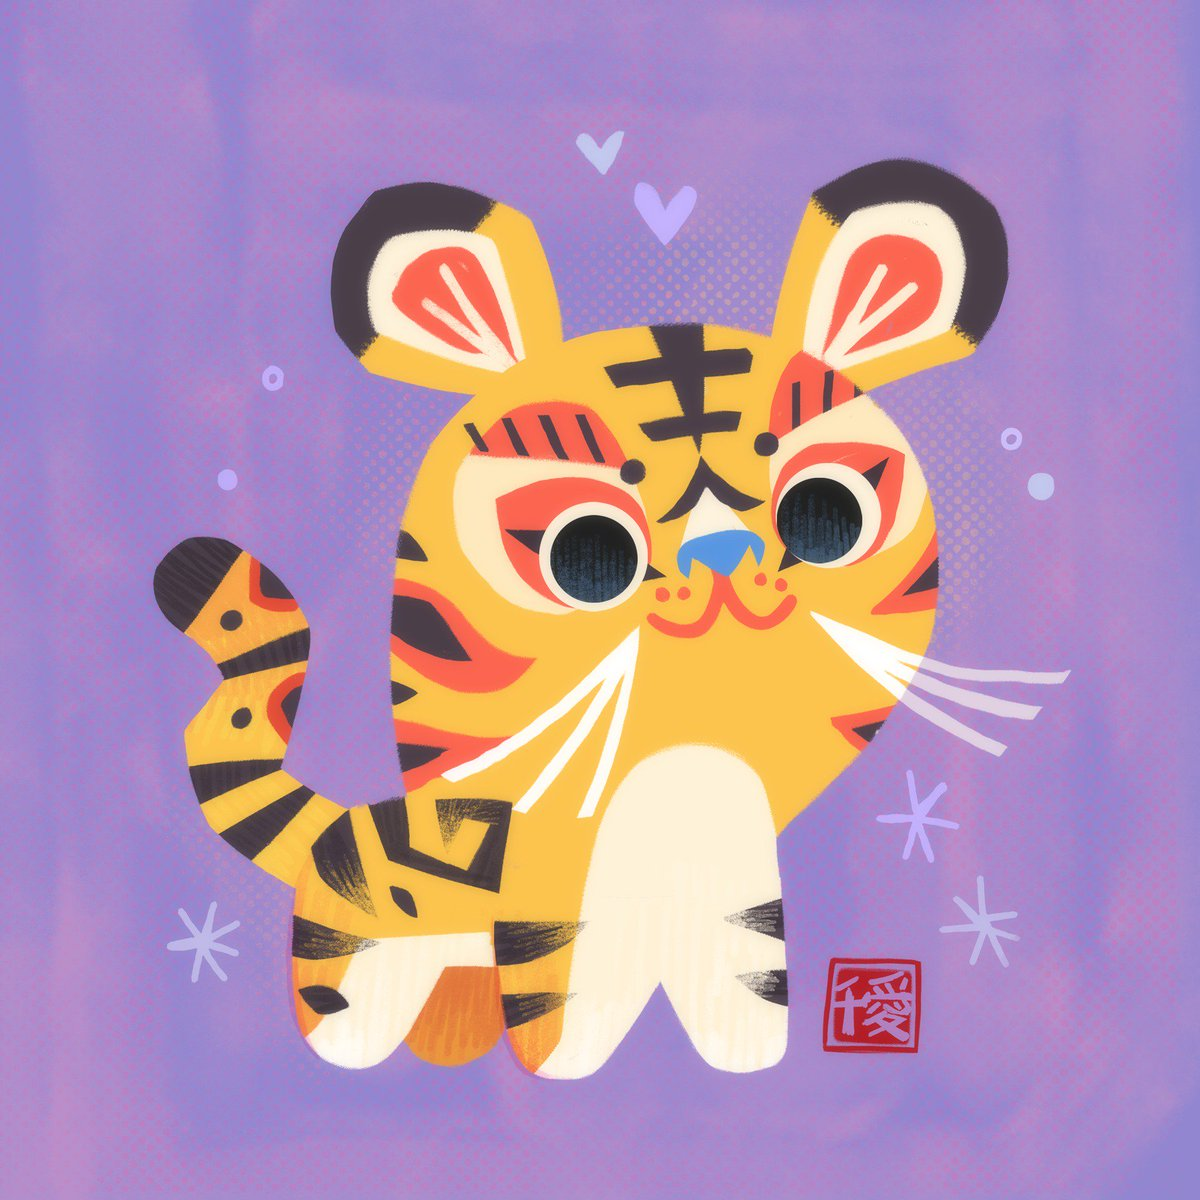 originally tried to draw this with a chinese tiger doll aesthetic but couldn't achieve the look i wanted 😅\\